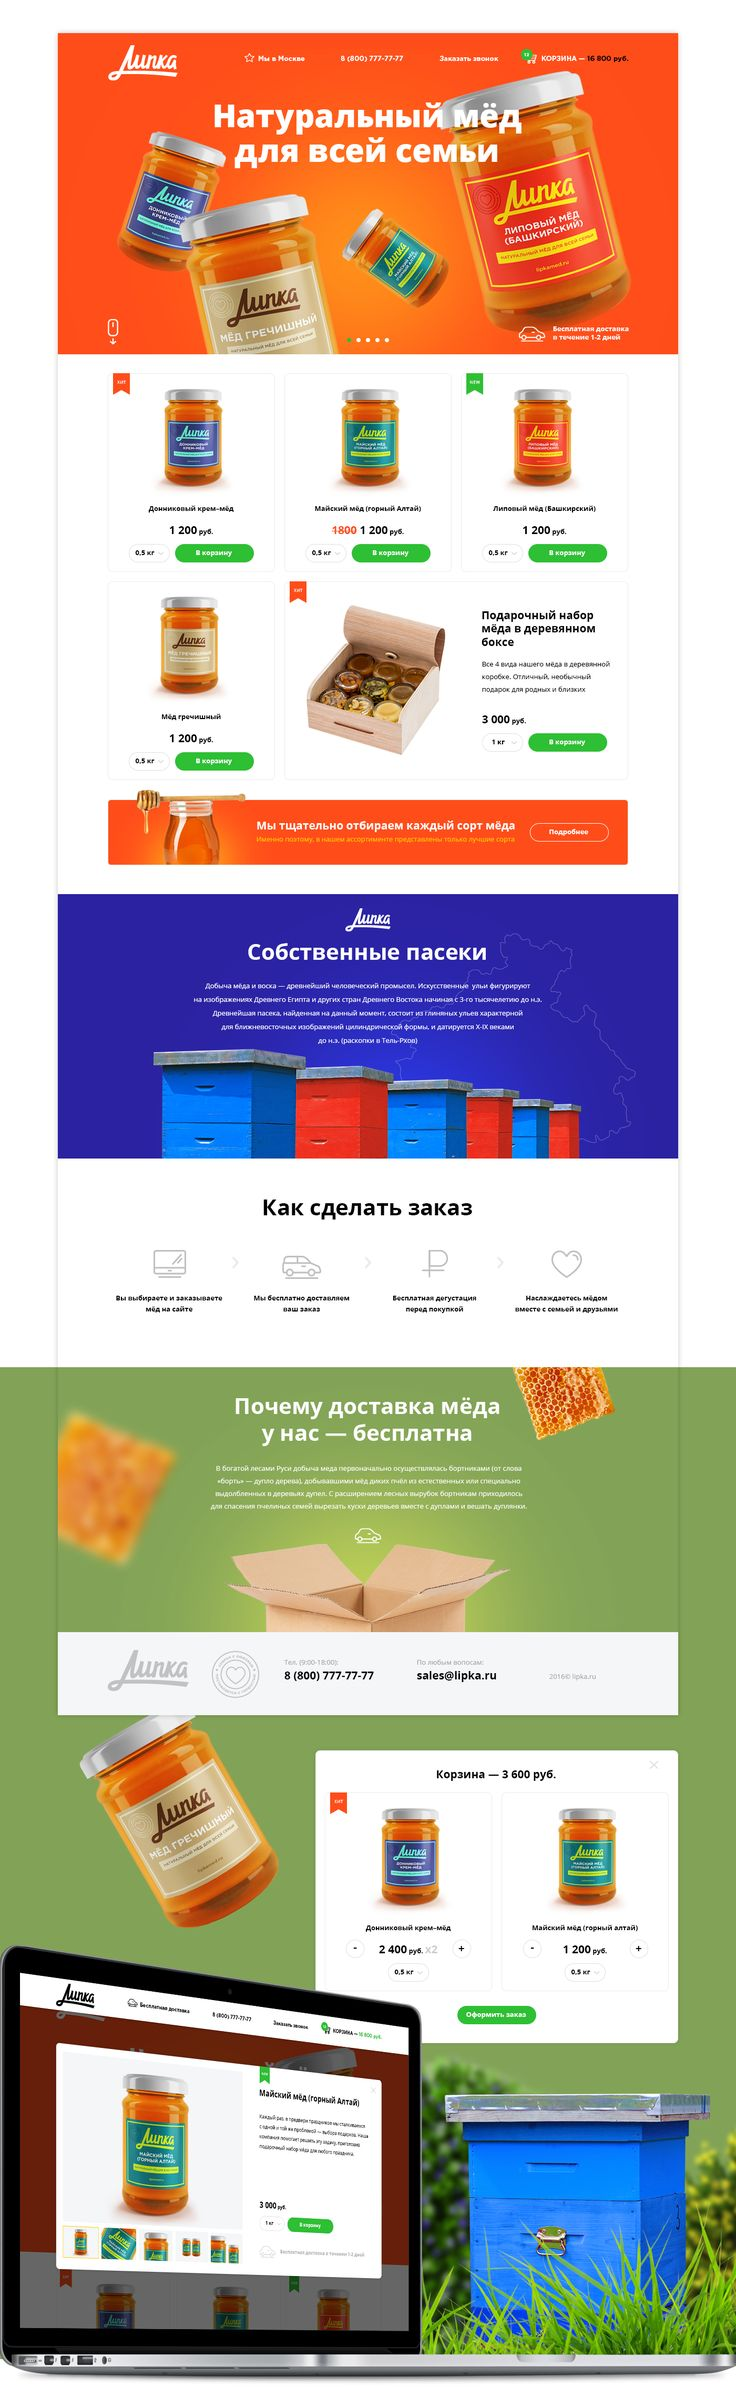 """Lipka"" honey on Behance"